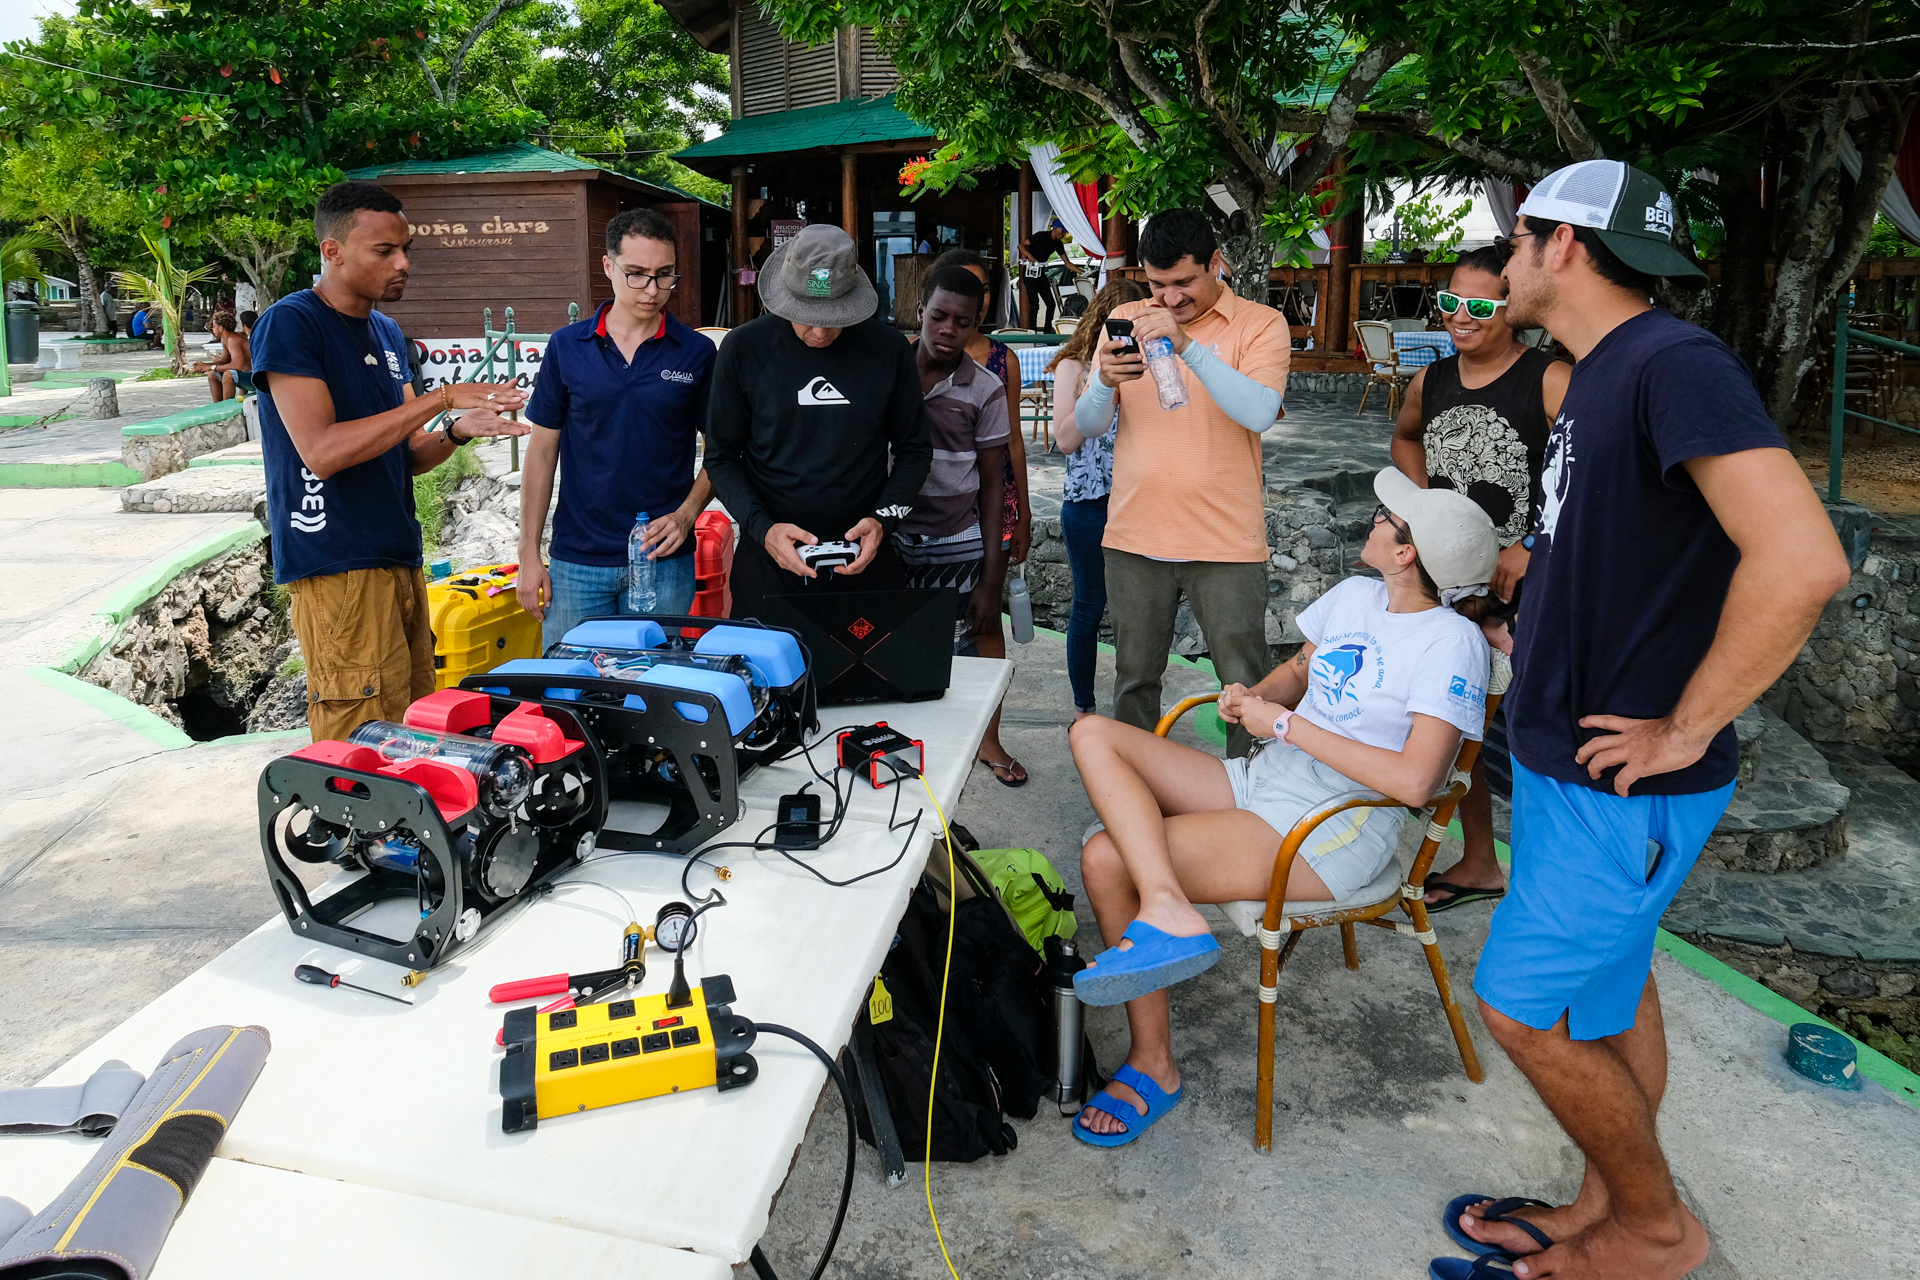 Coral restoration and monitoring with drones